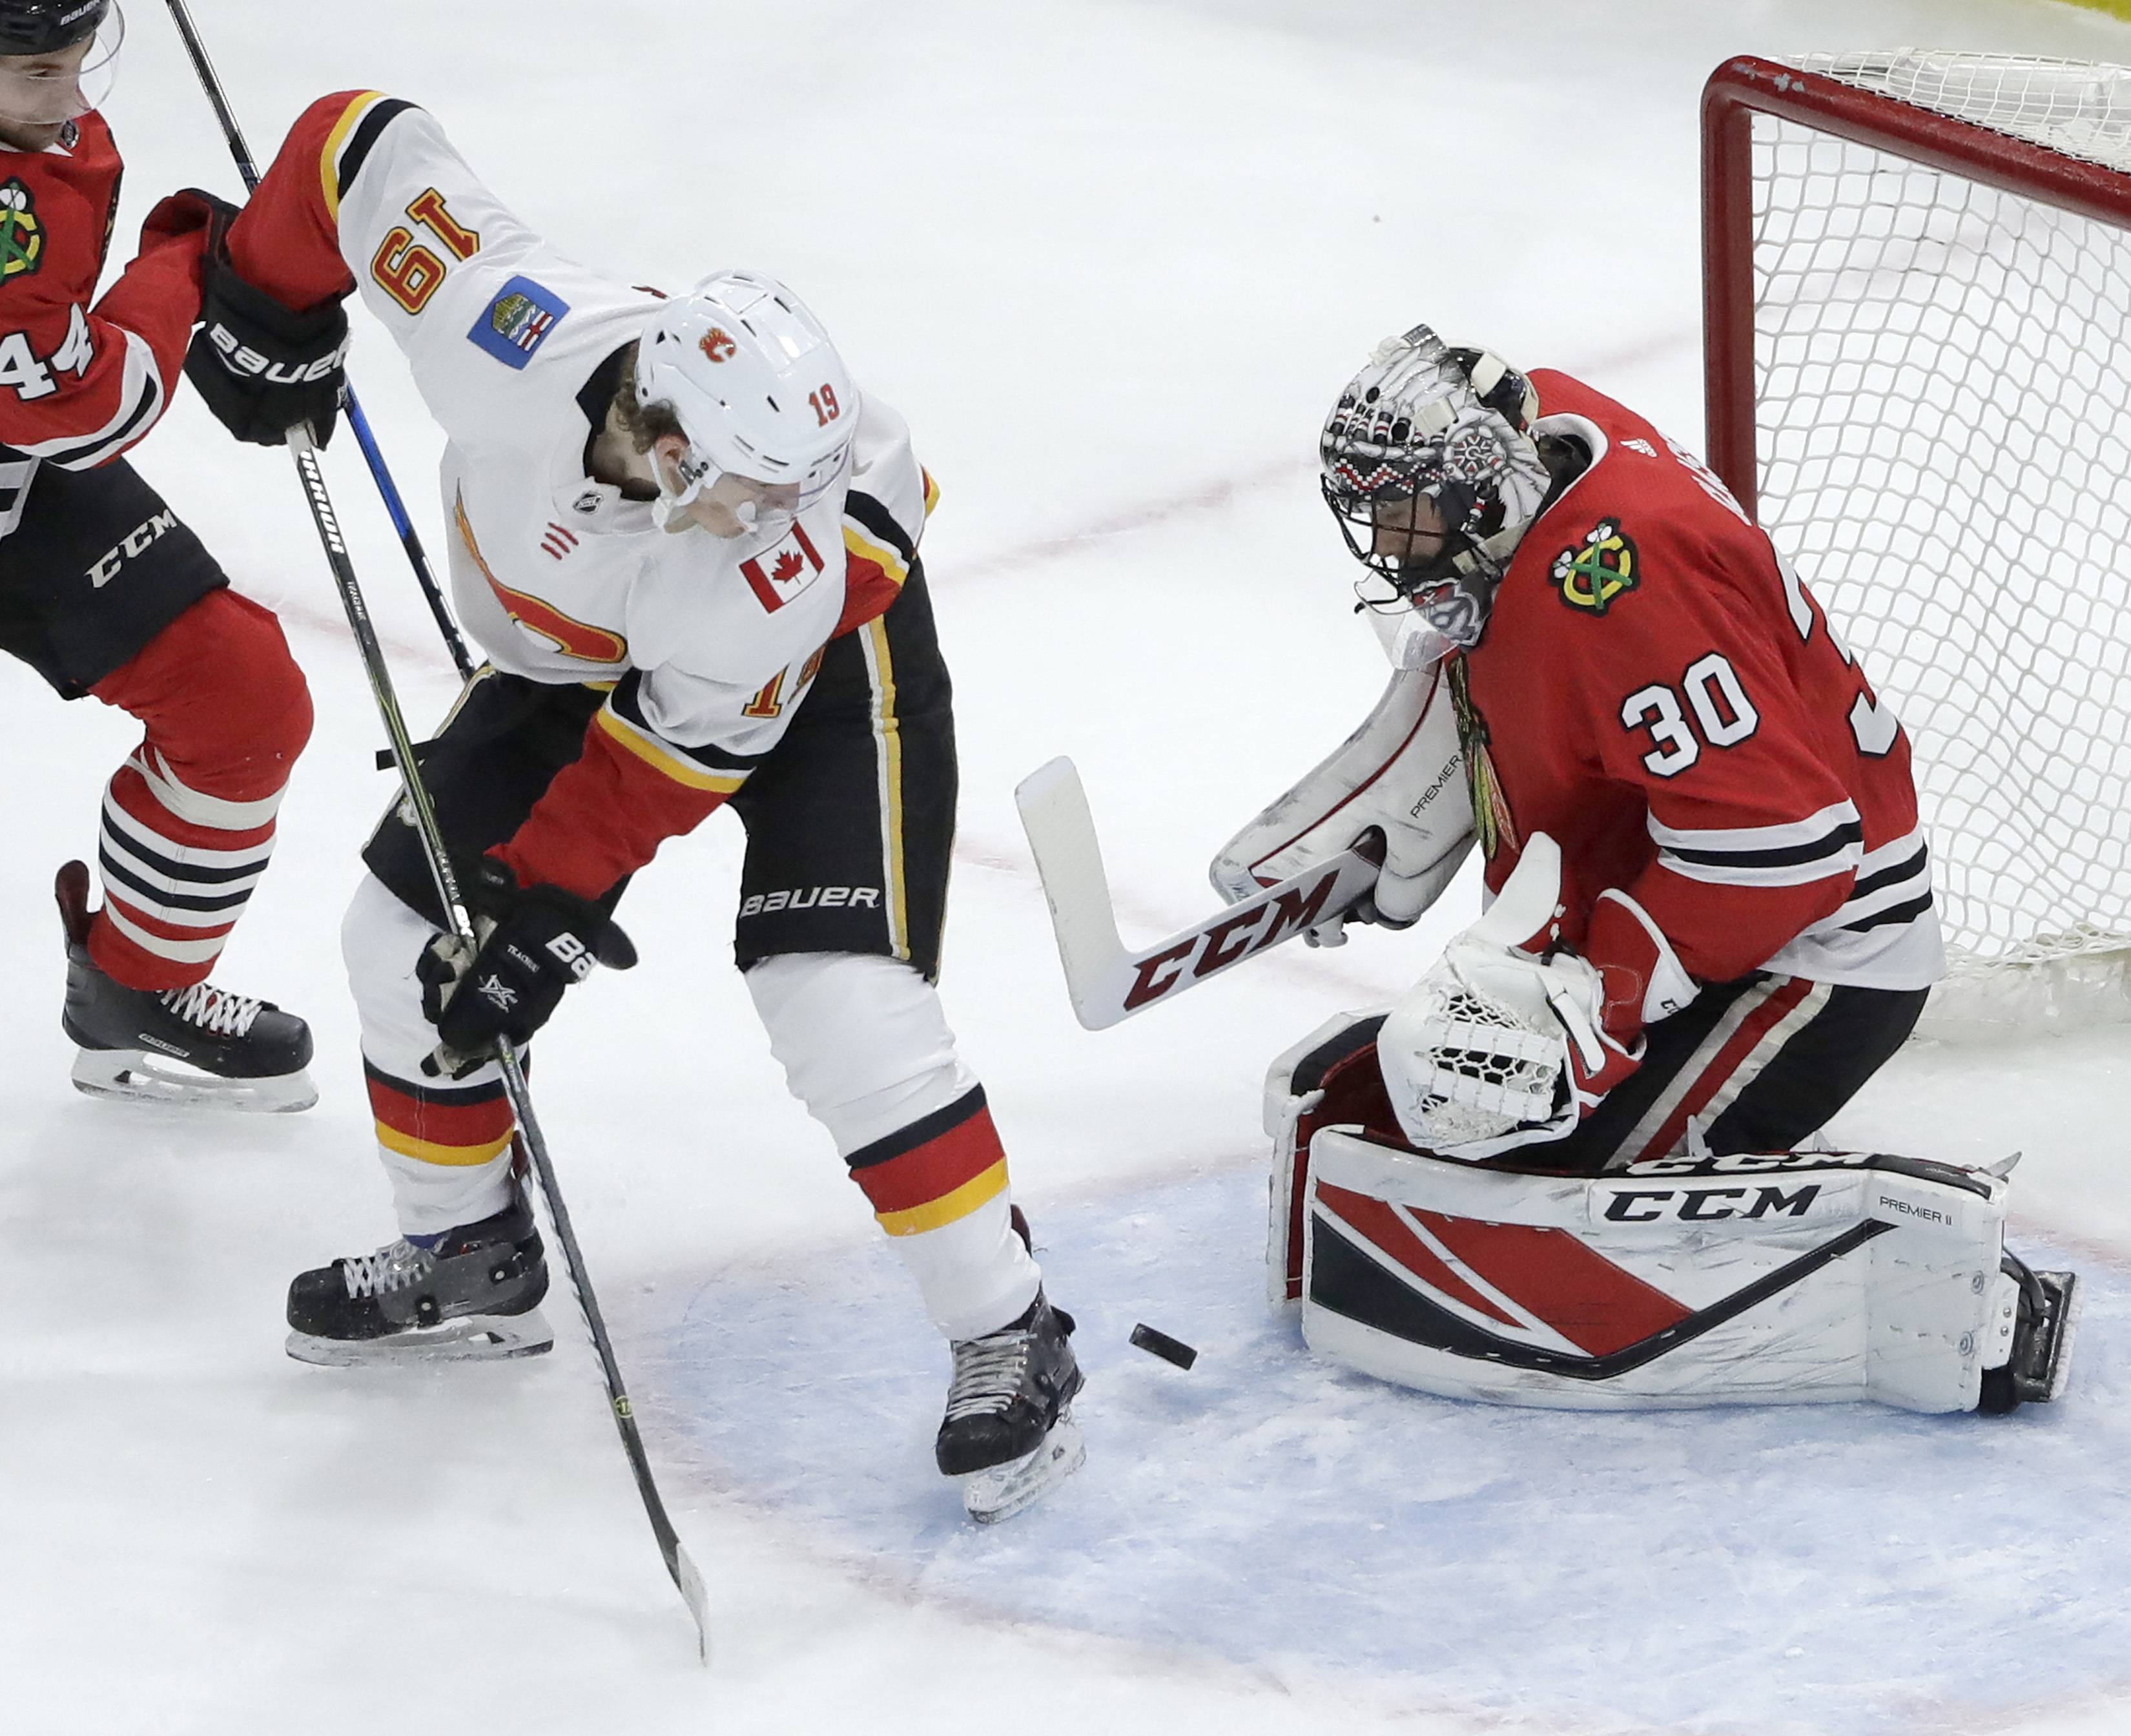 Chicago Blackhawks goaltender Jeff Glass (30) makes a save as Calgary Flames' Matthew Tkachuk (19) looks for the rebound during the first period of an NHL hockey game Tuesday, Feb. 6, 2018, in Chicago.